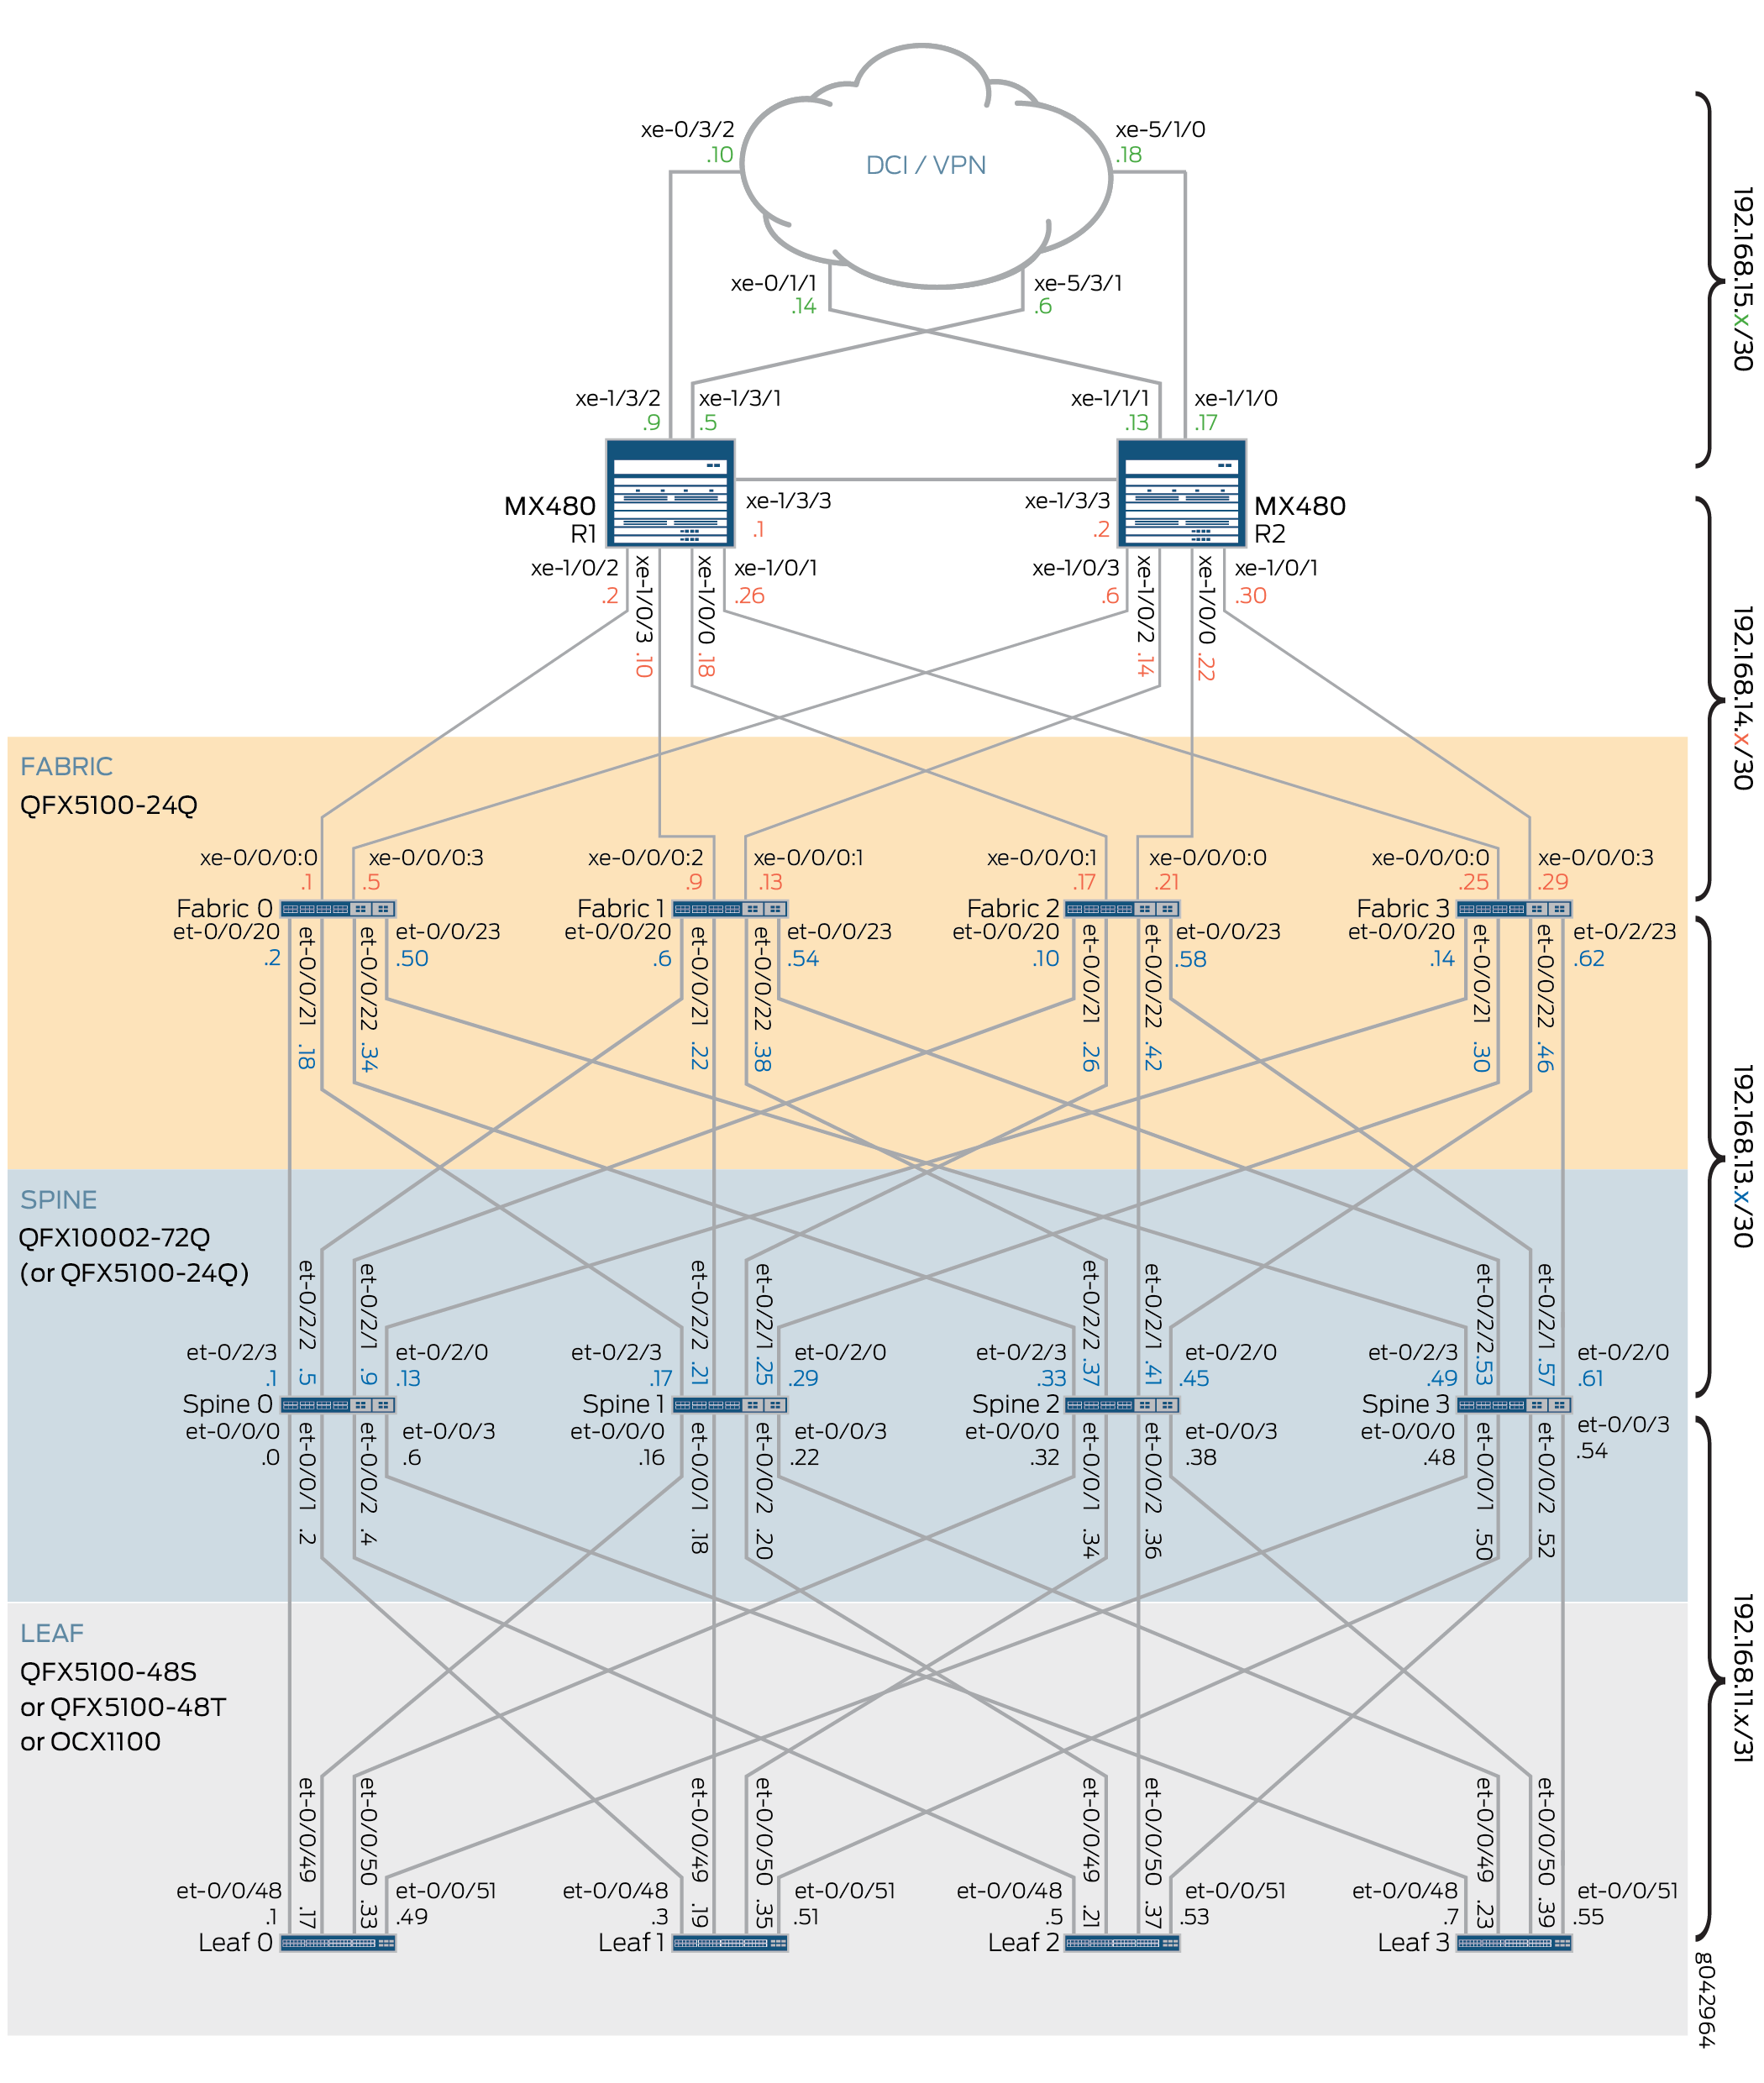 Software as a Service Solution Topology